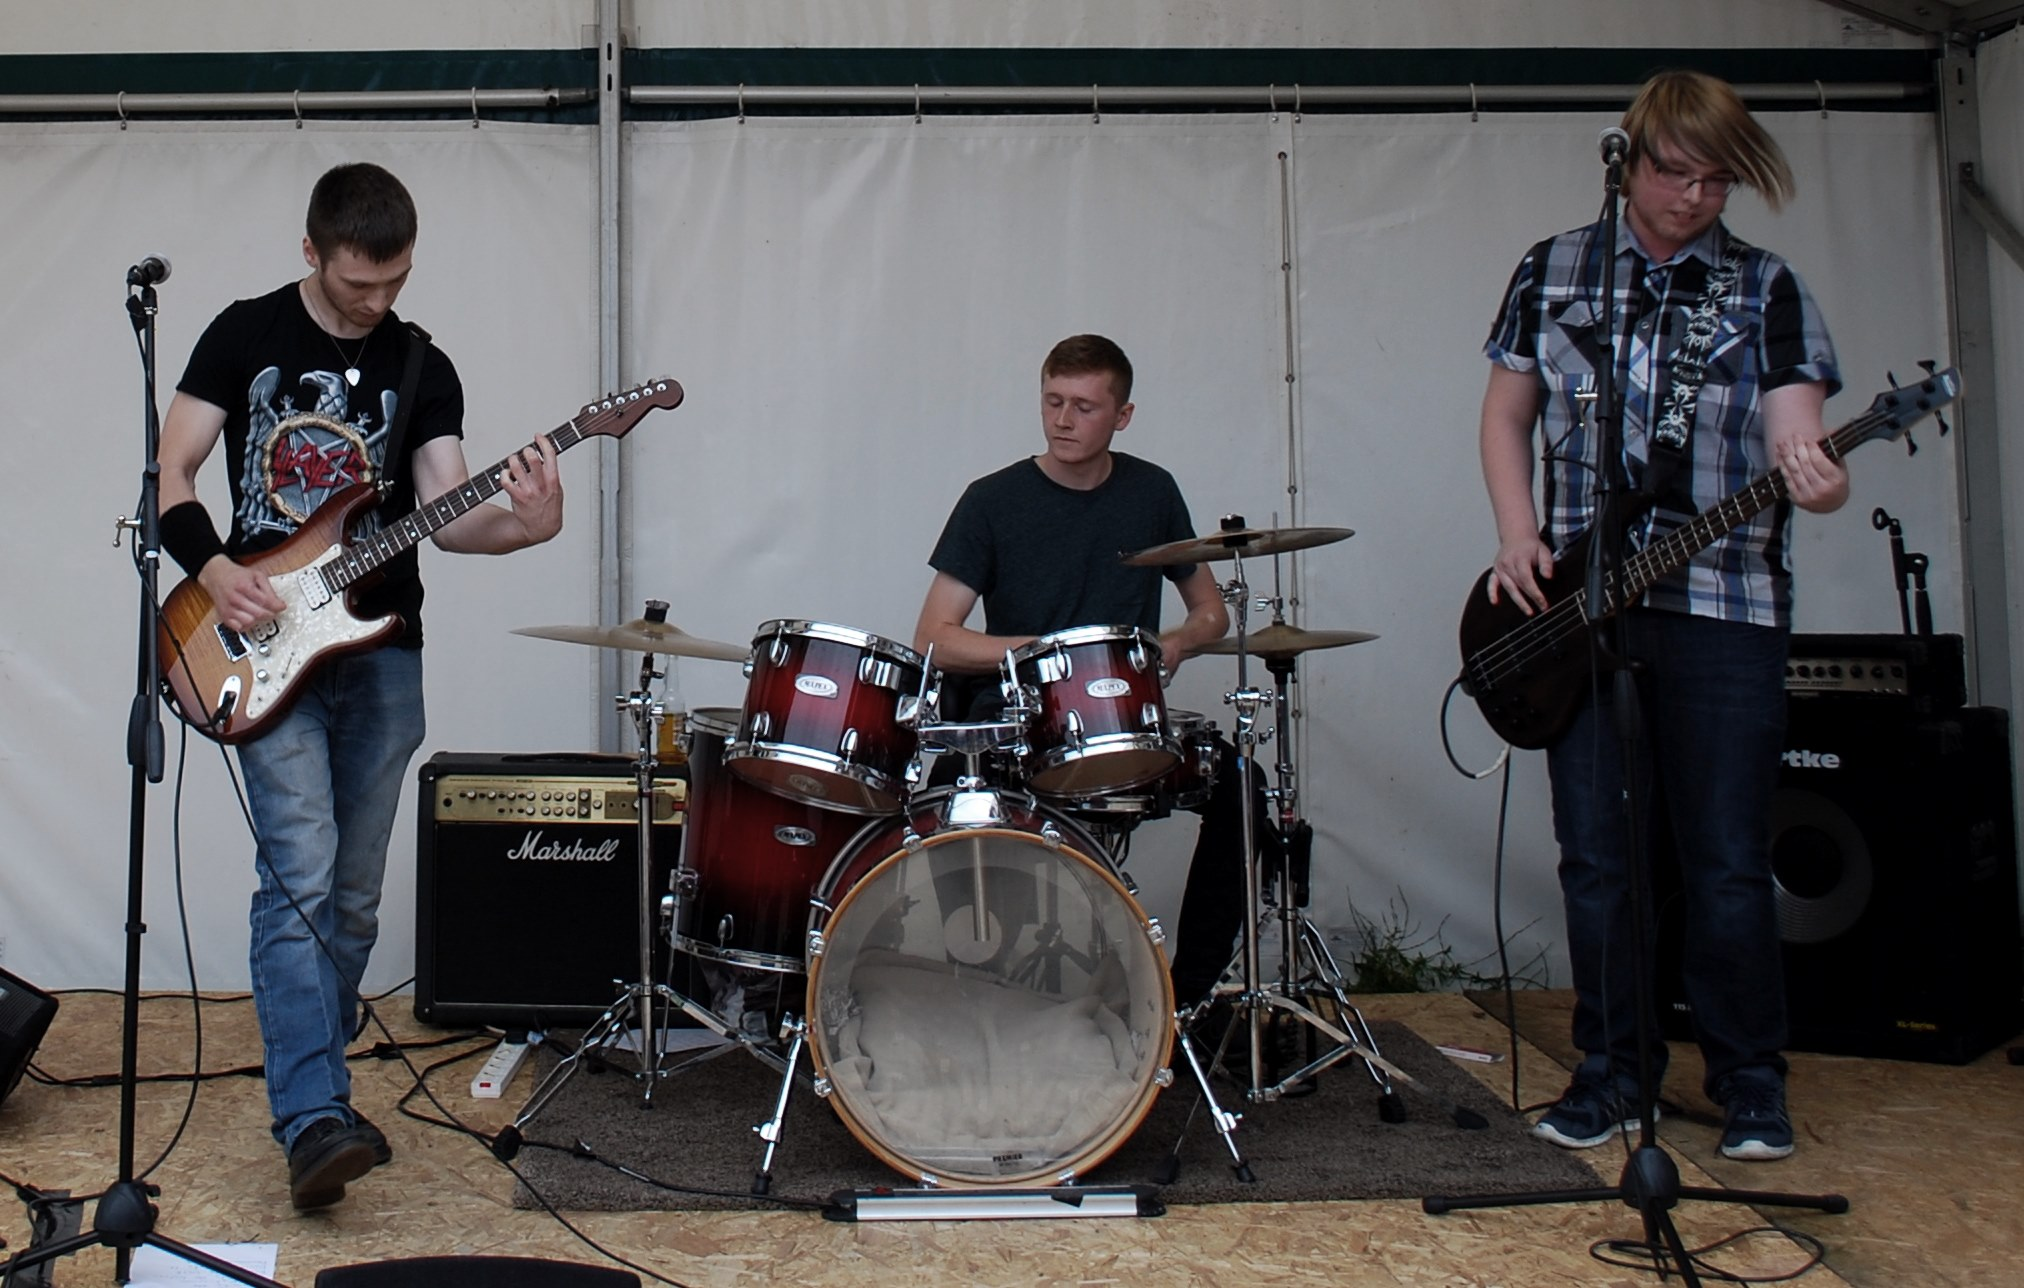 On-stage at the 2019 Enderby Music Festival